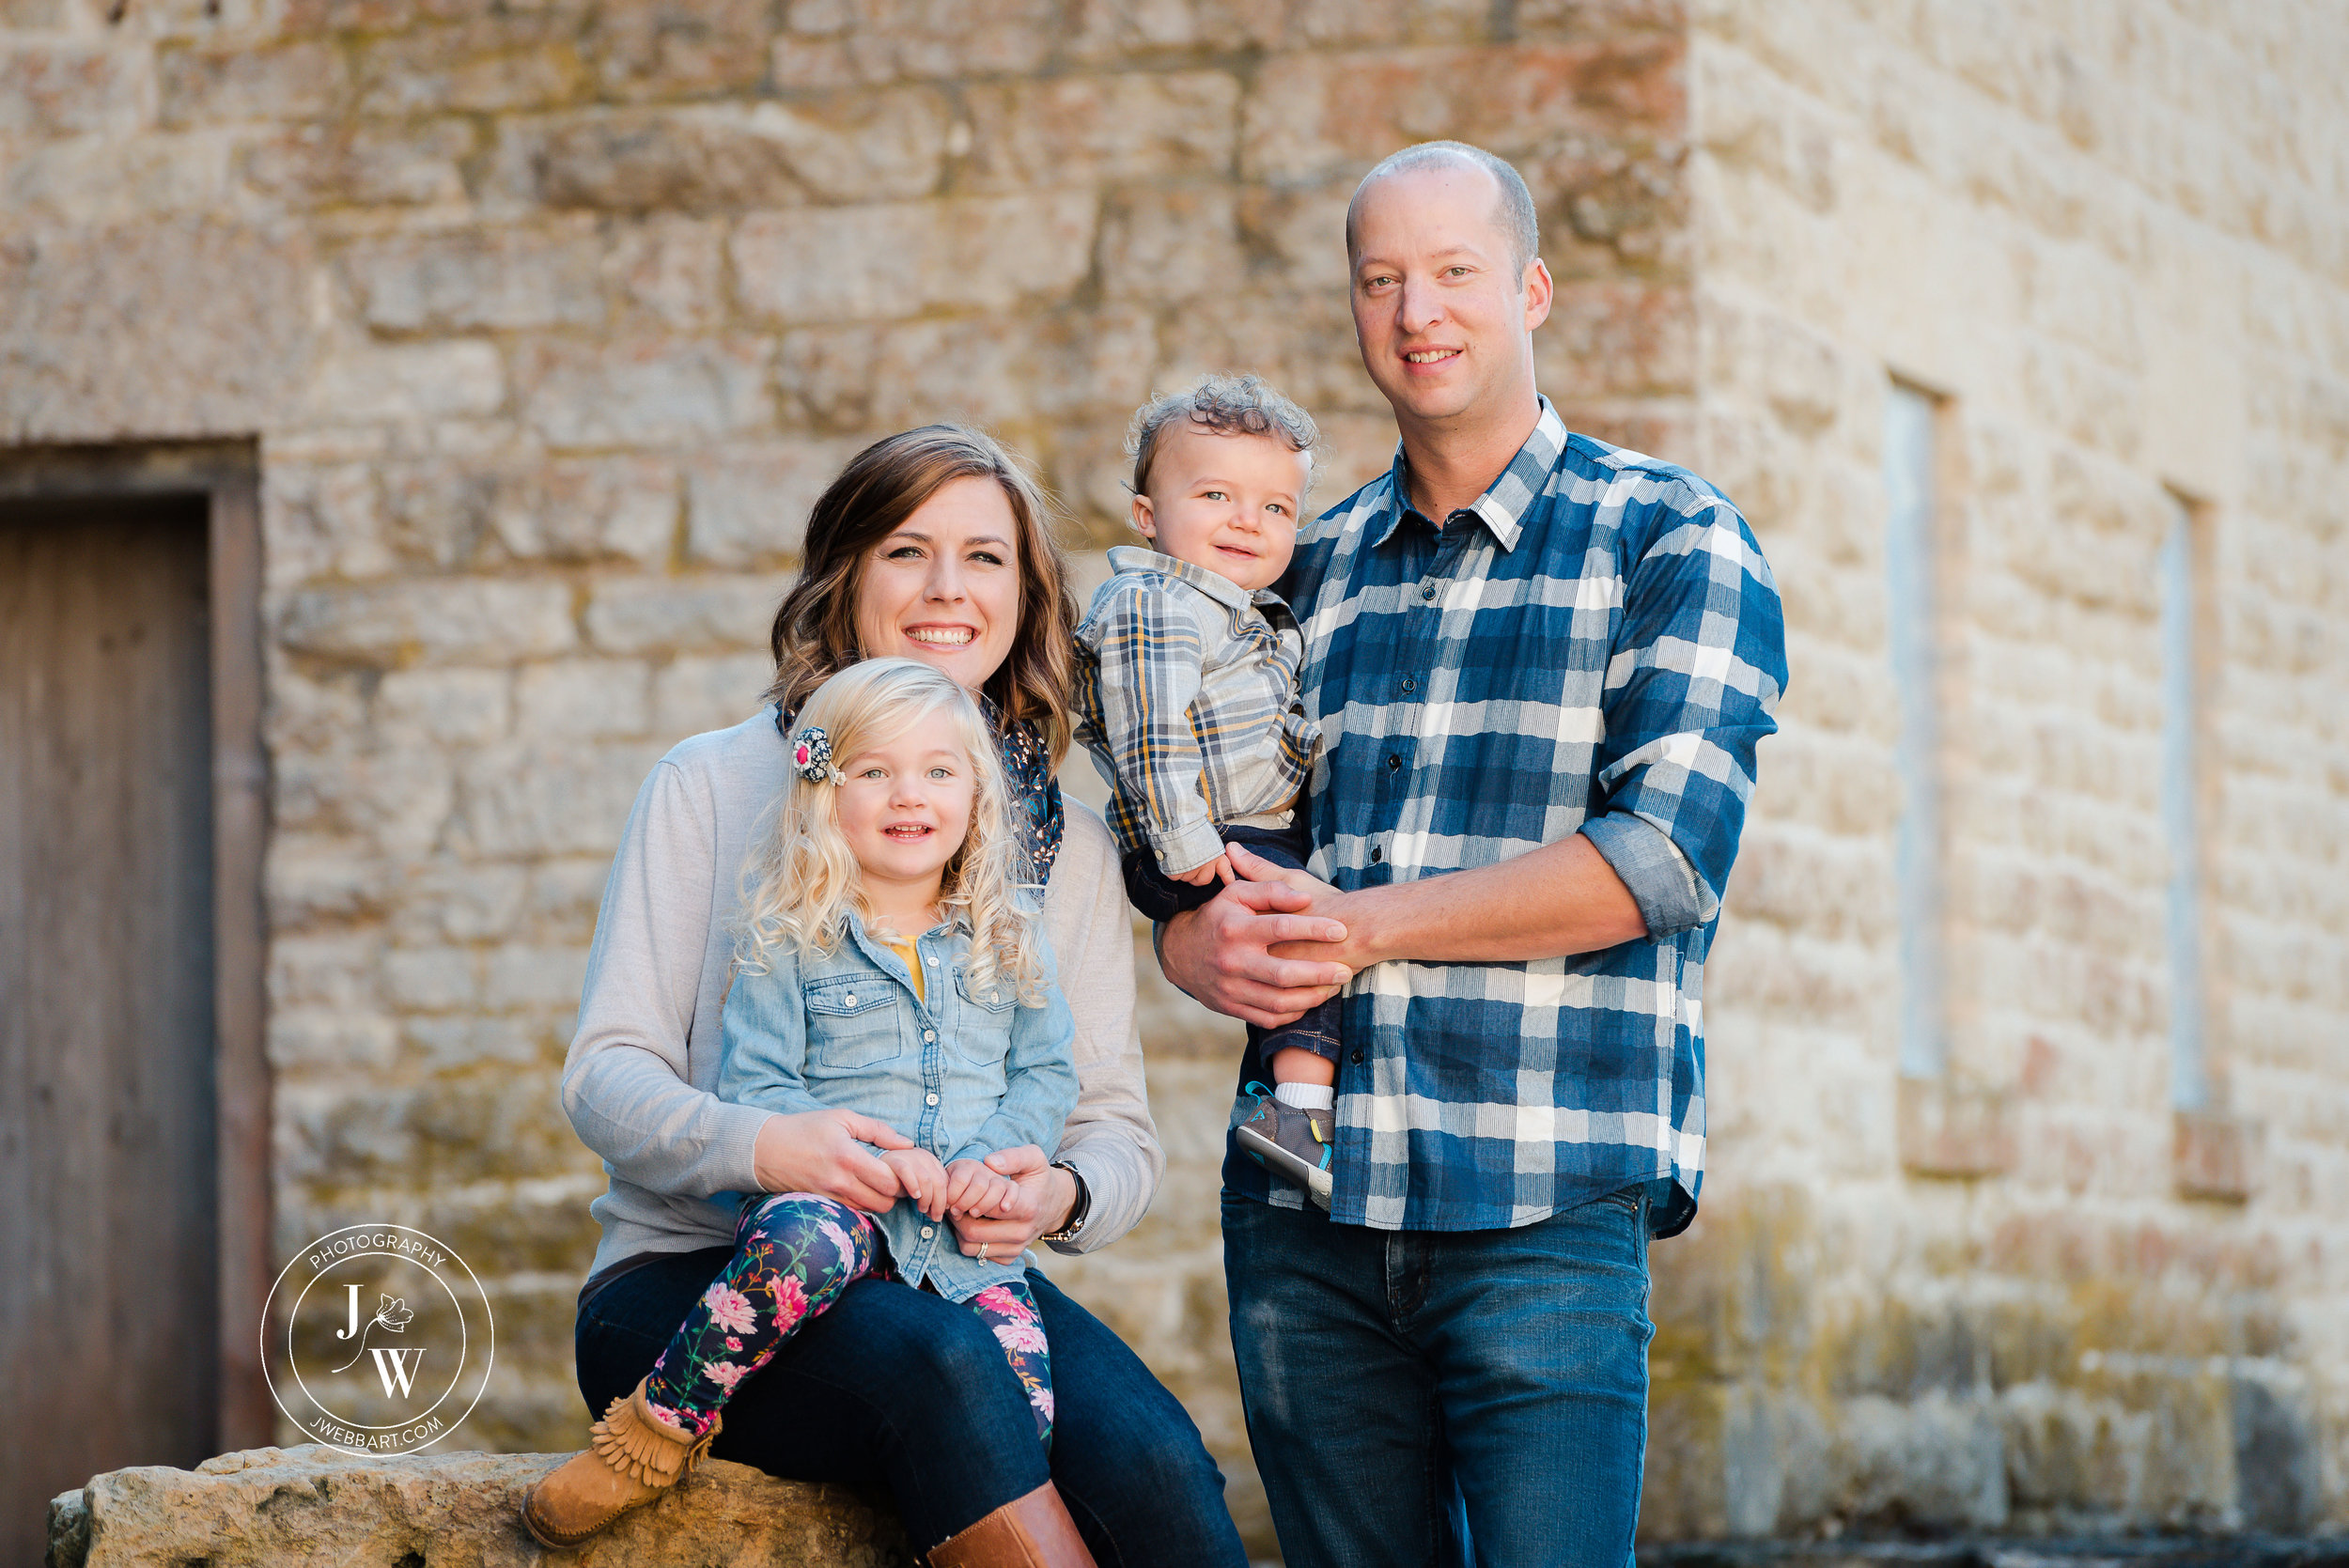 Family + Kids + Couples - Invest in beautiful images... your family will cherish them!